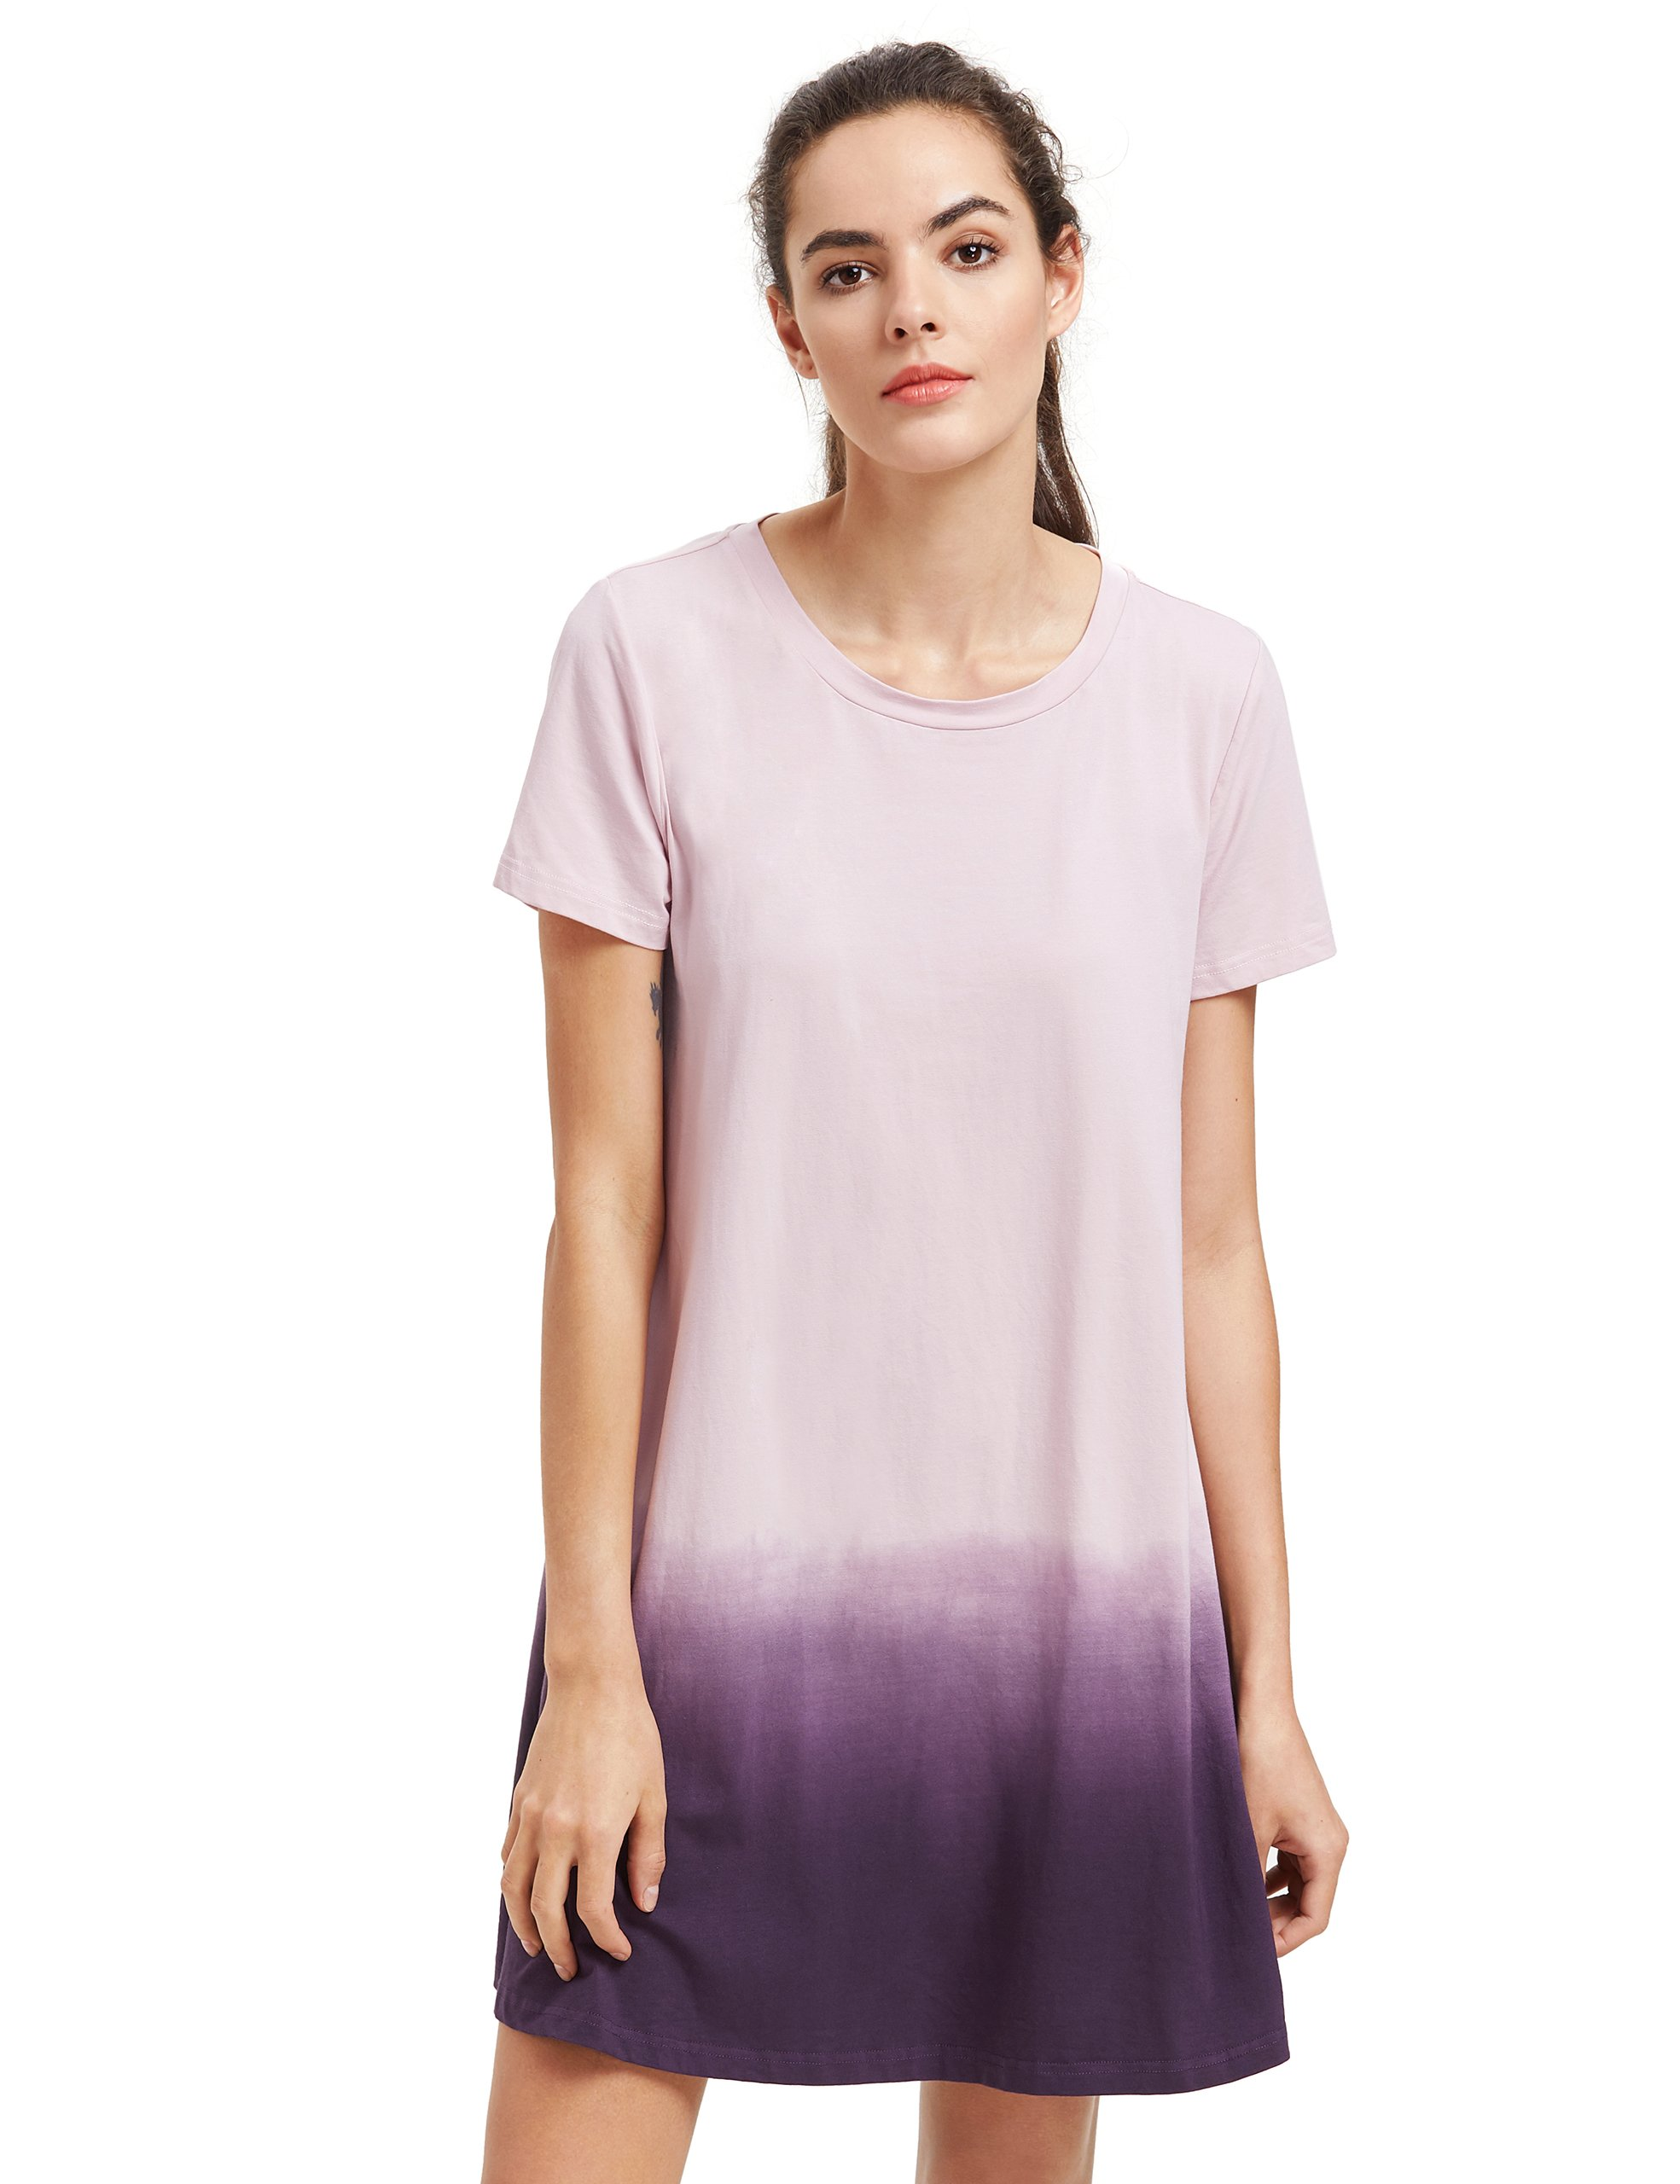 Romwe Women's Tunic Swing T-Shirt Dress Short Sleeve Tie Dye Ombre Dress Lilac L